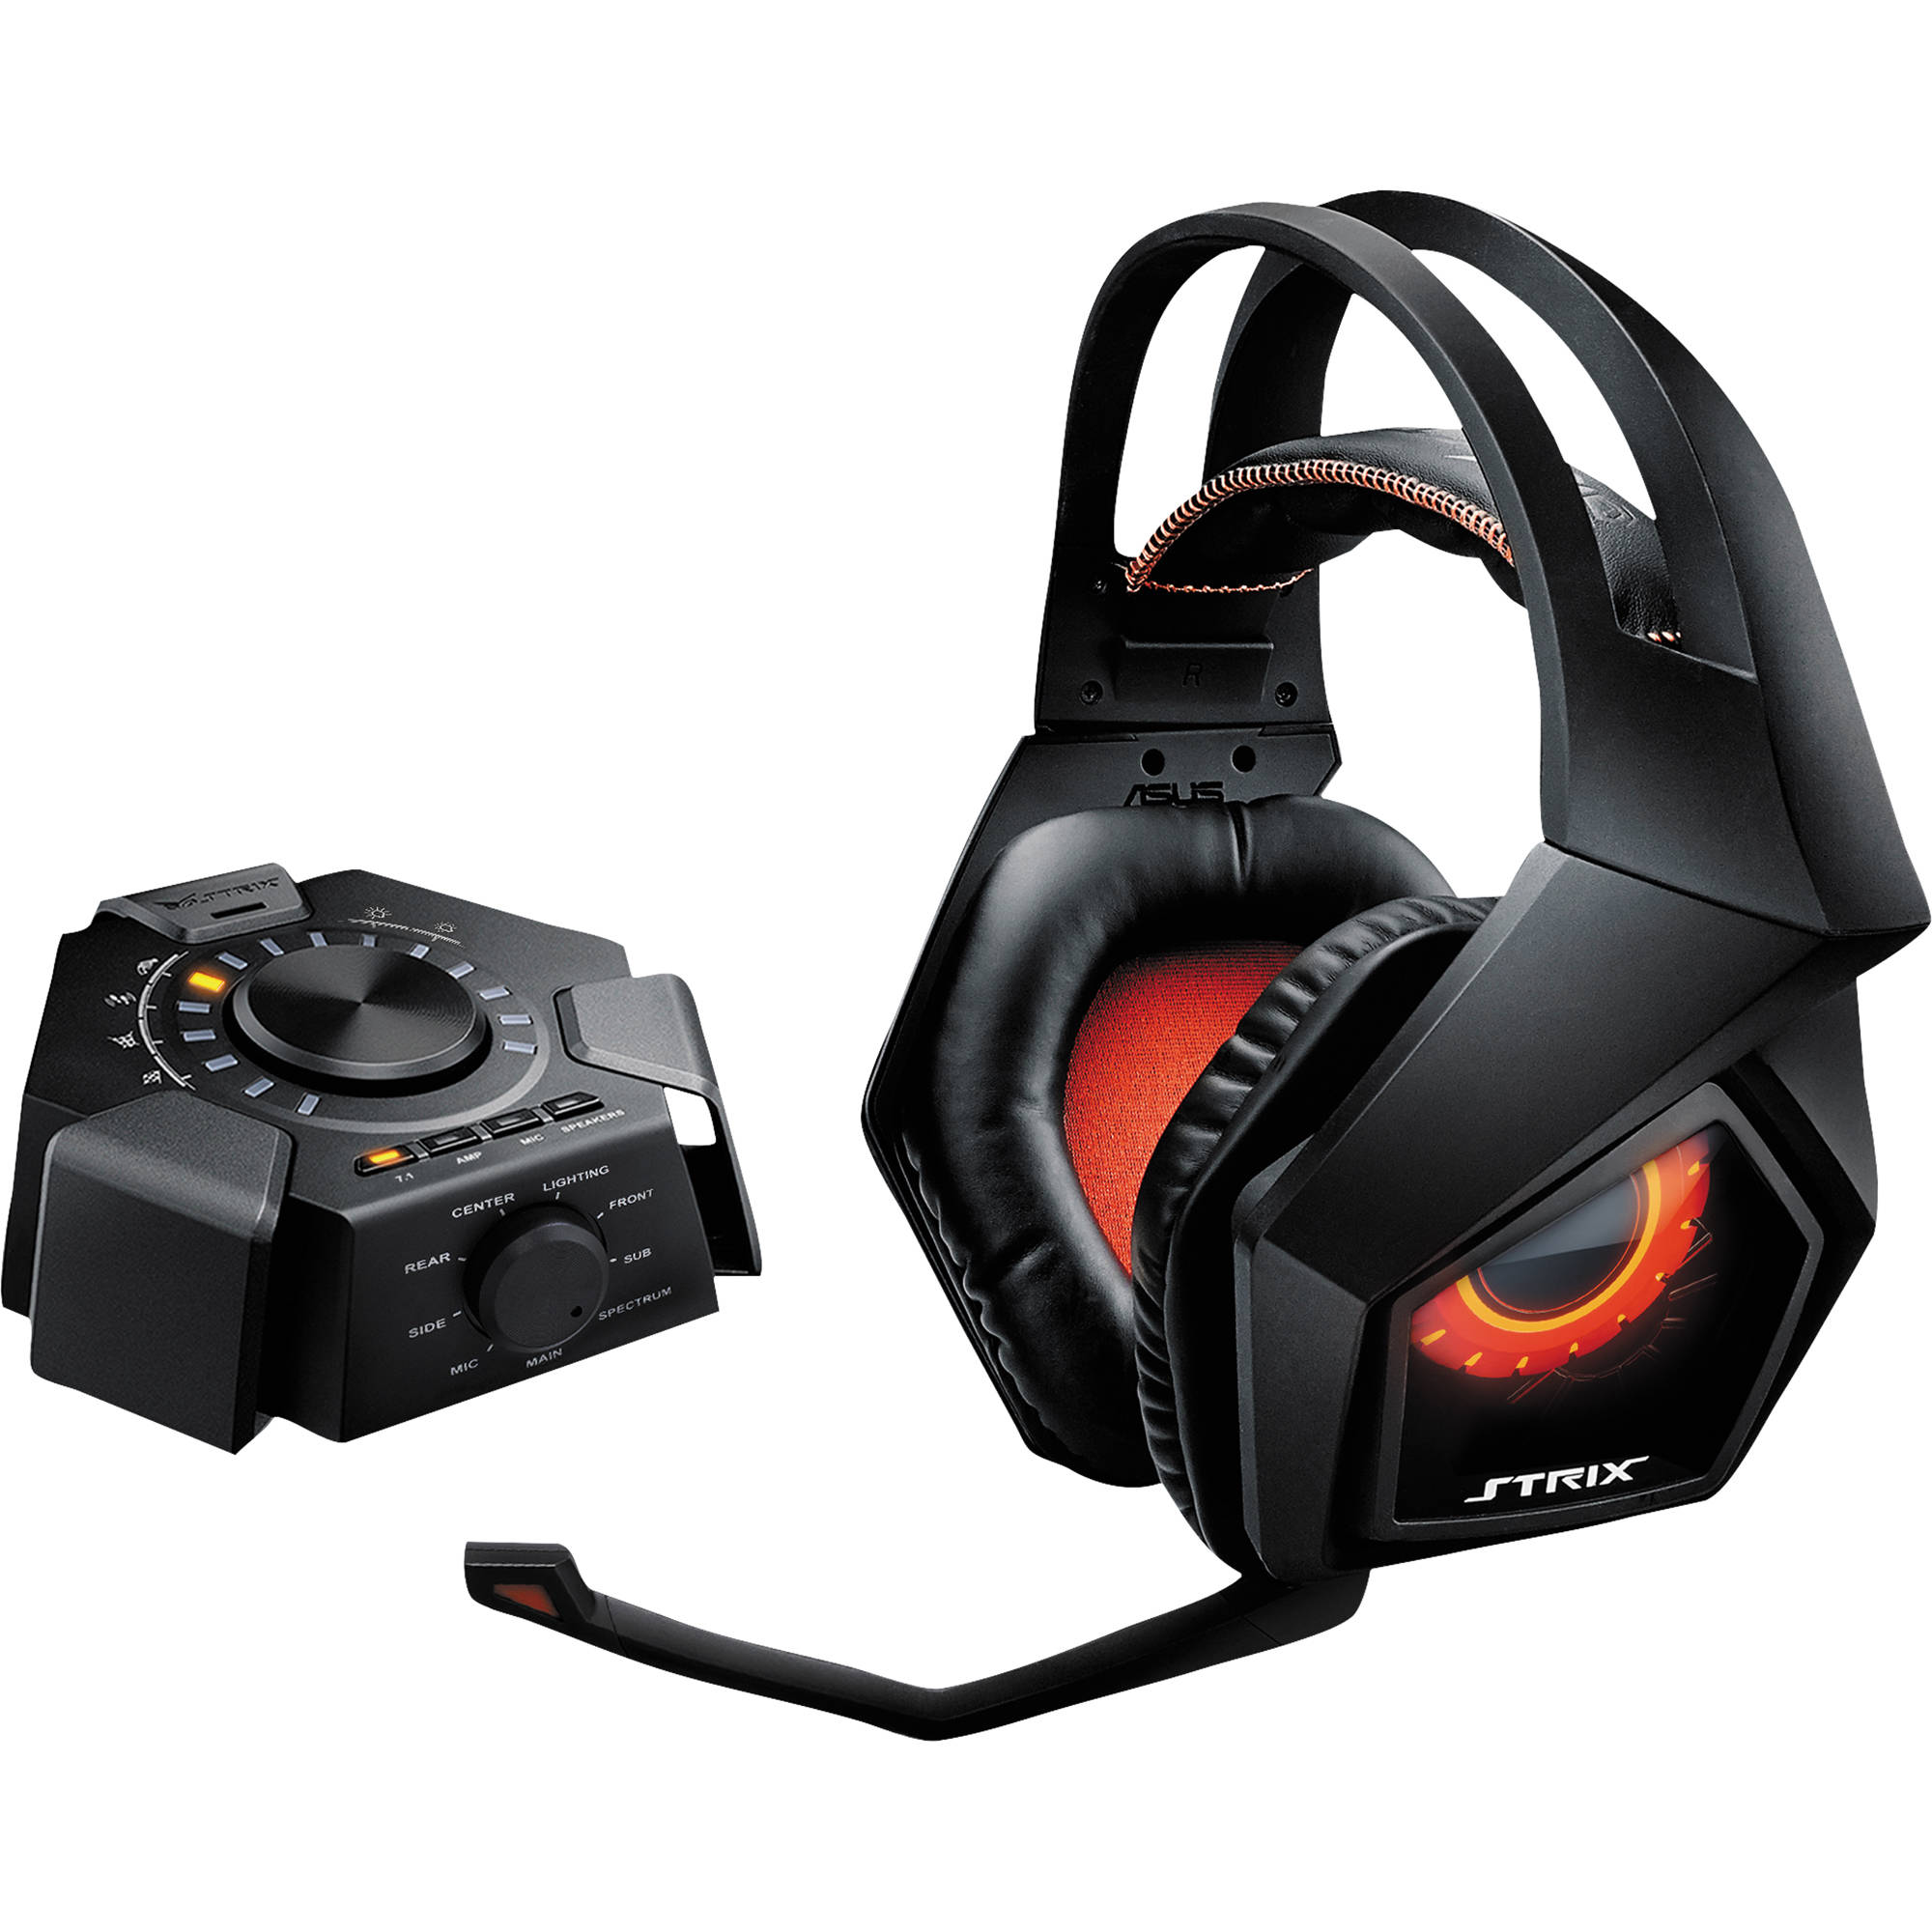 Image result for The fine gaming headsets